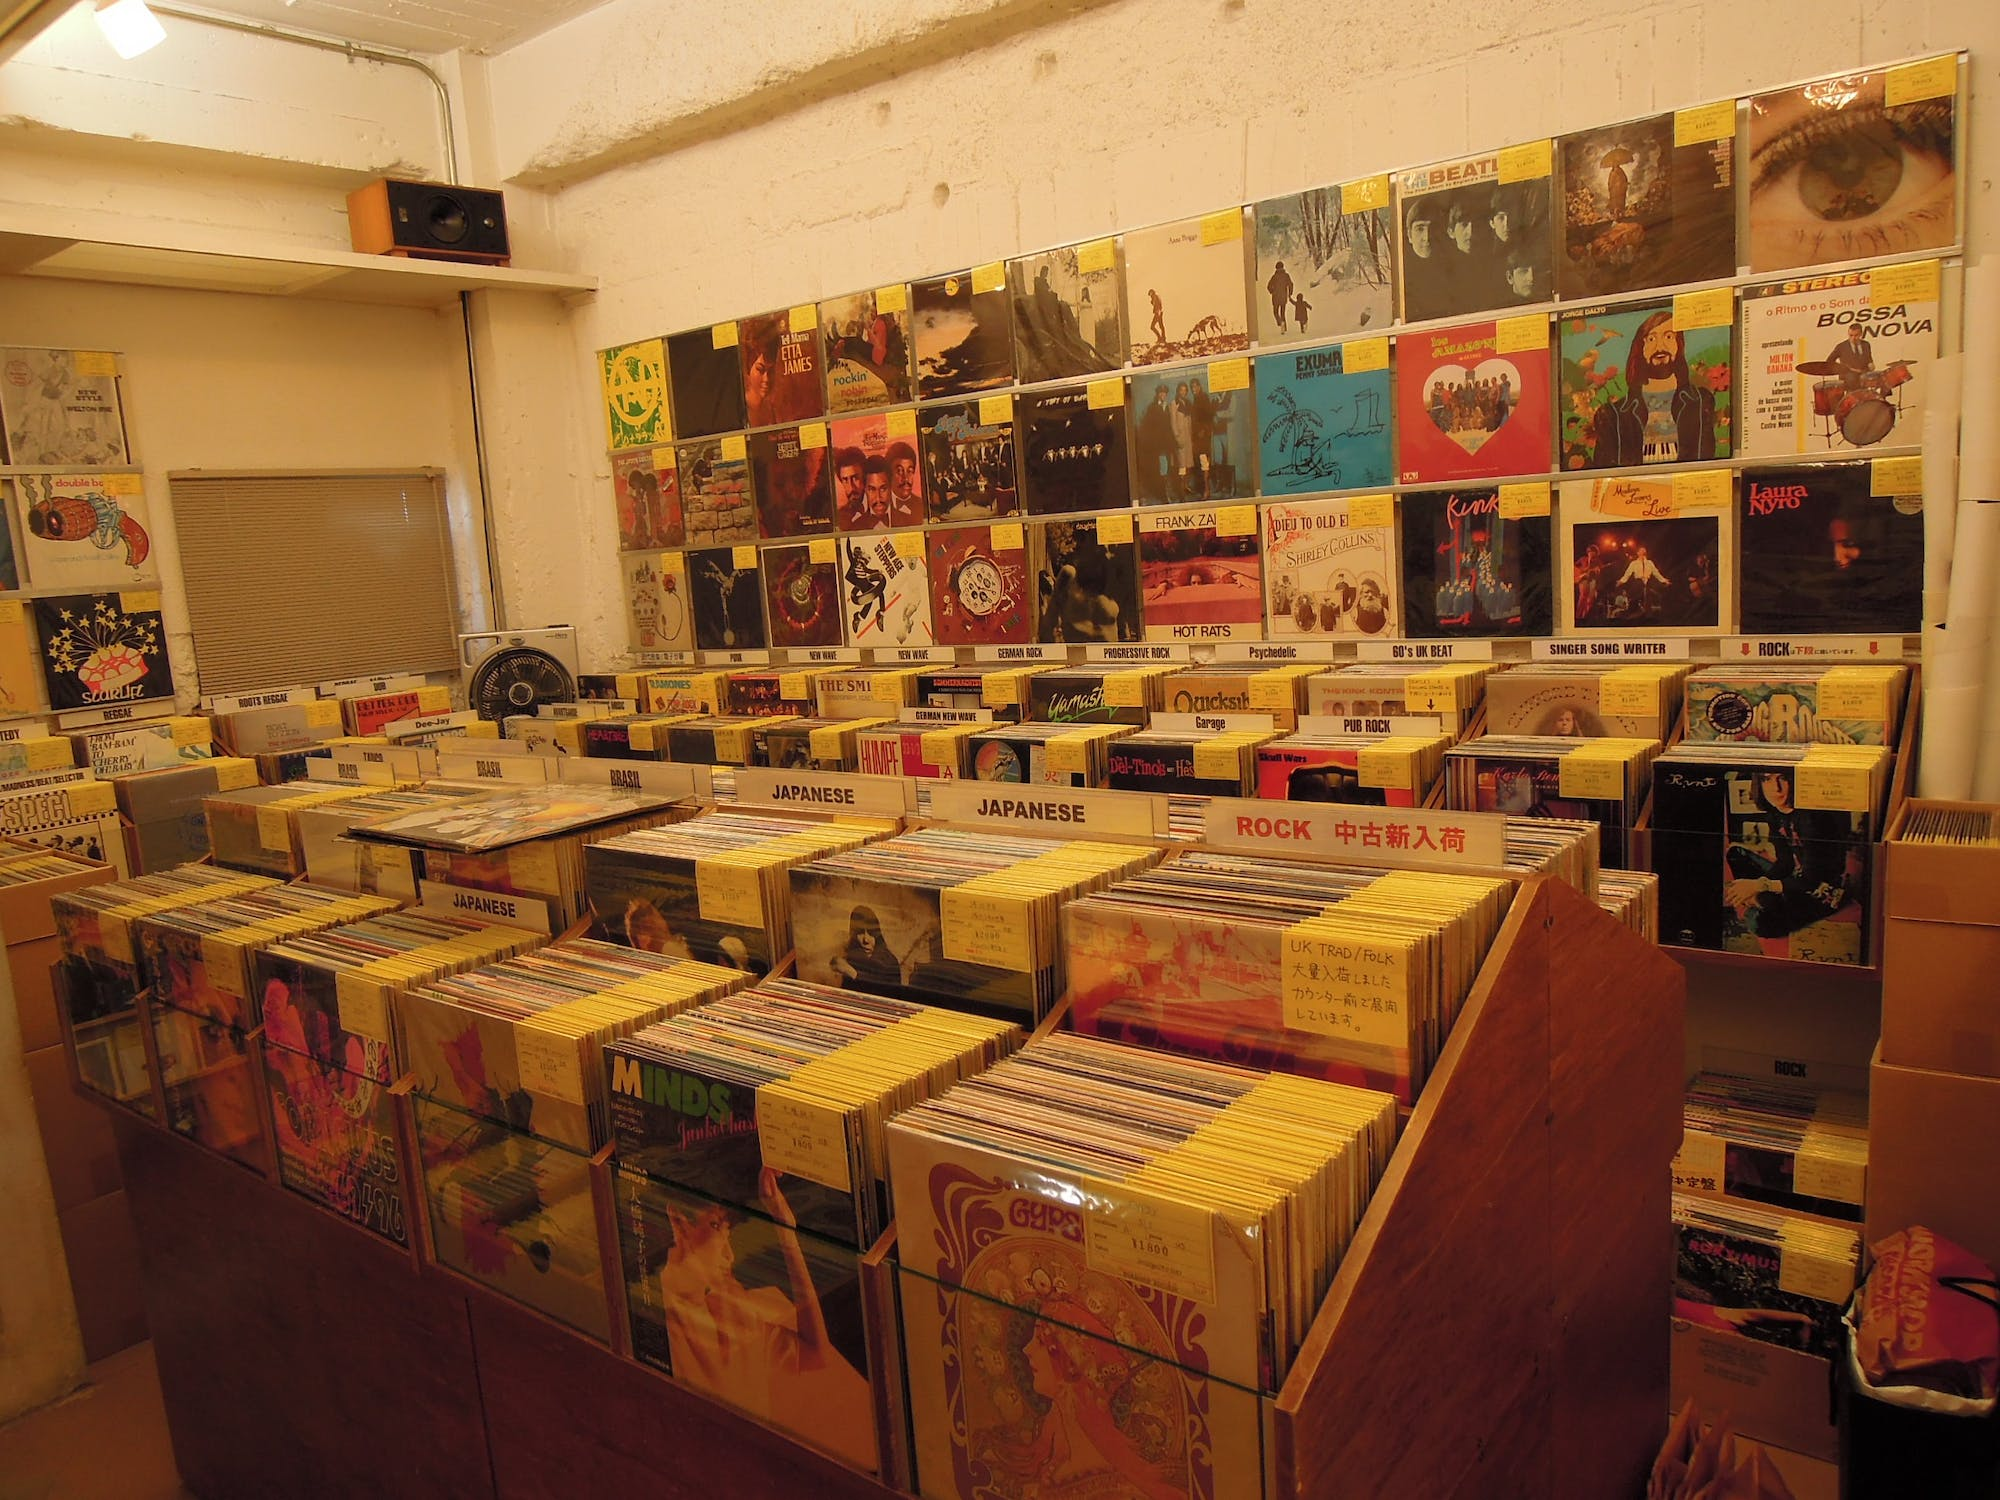 WORKSHOP records - Record Store Image